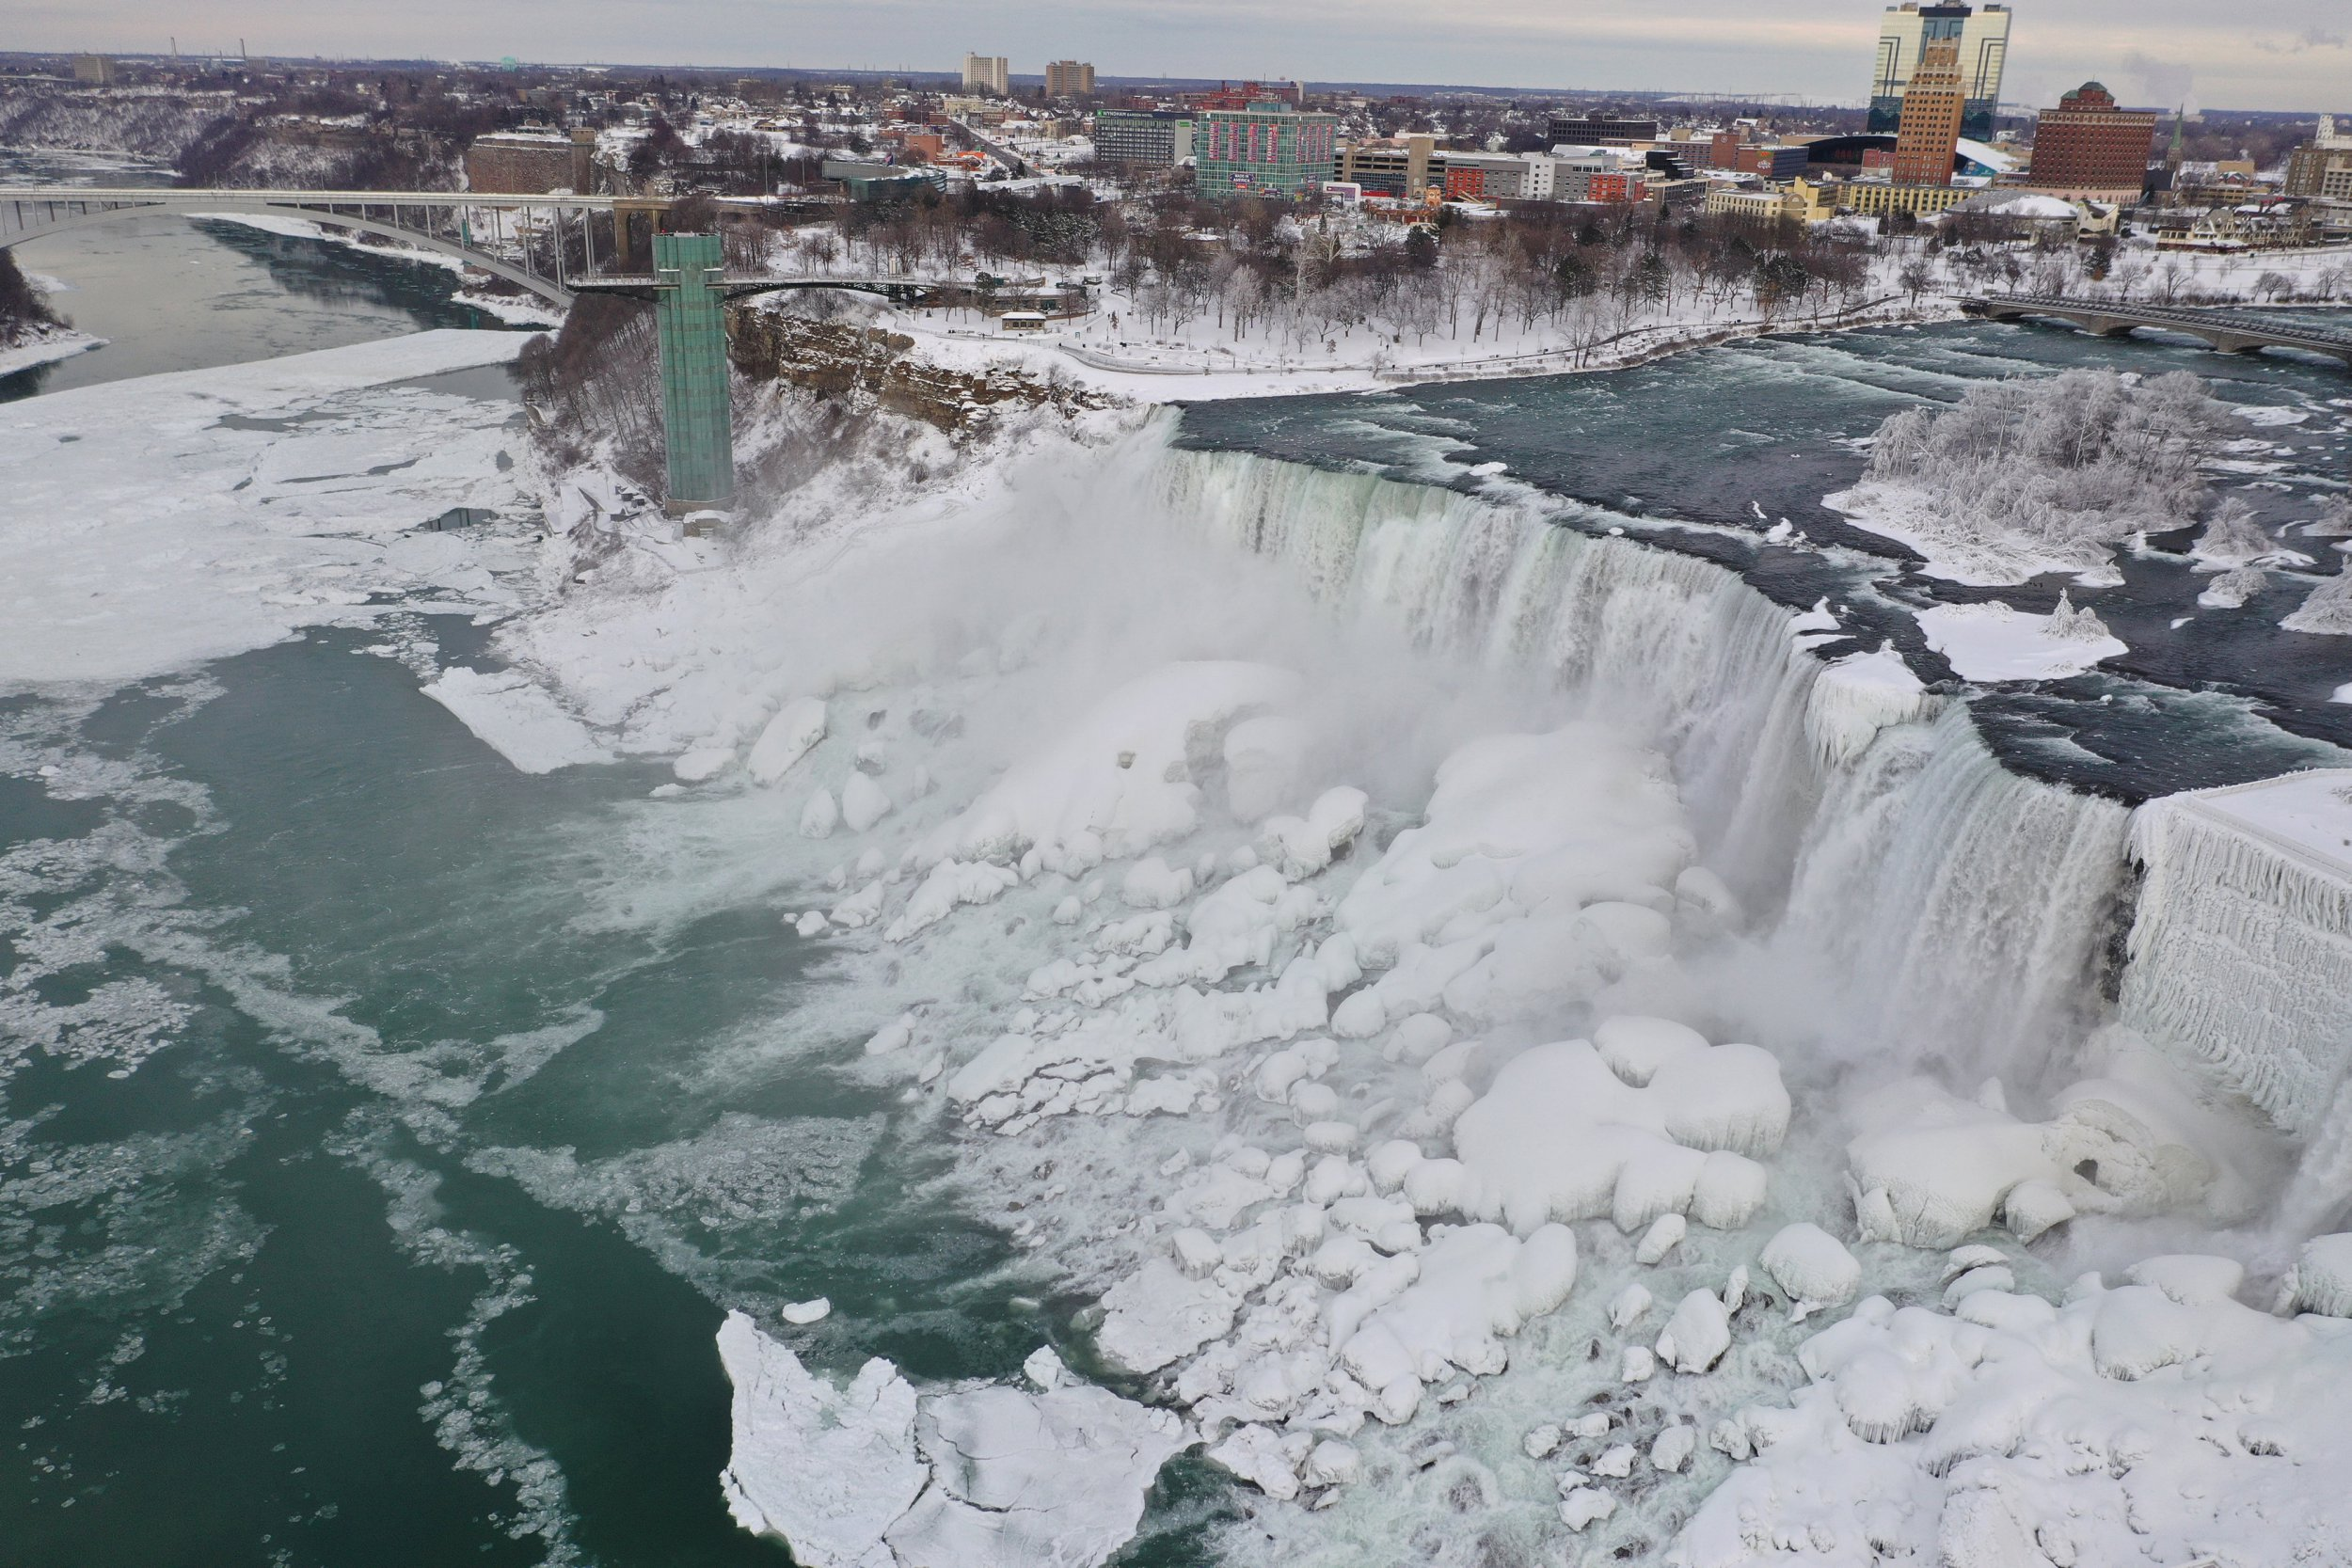 An aerial photo taken over the American side shows water flowing around ice due to subzero temperatures in Niagara Falls, New York, U.S. January 22, 2019. REUTERS/Dronebase MANDATORY CREDIT